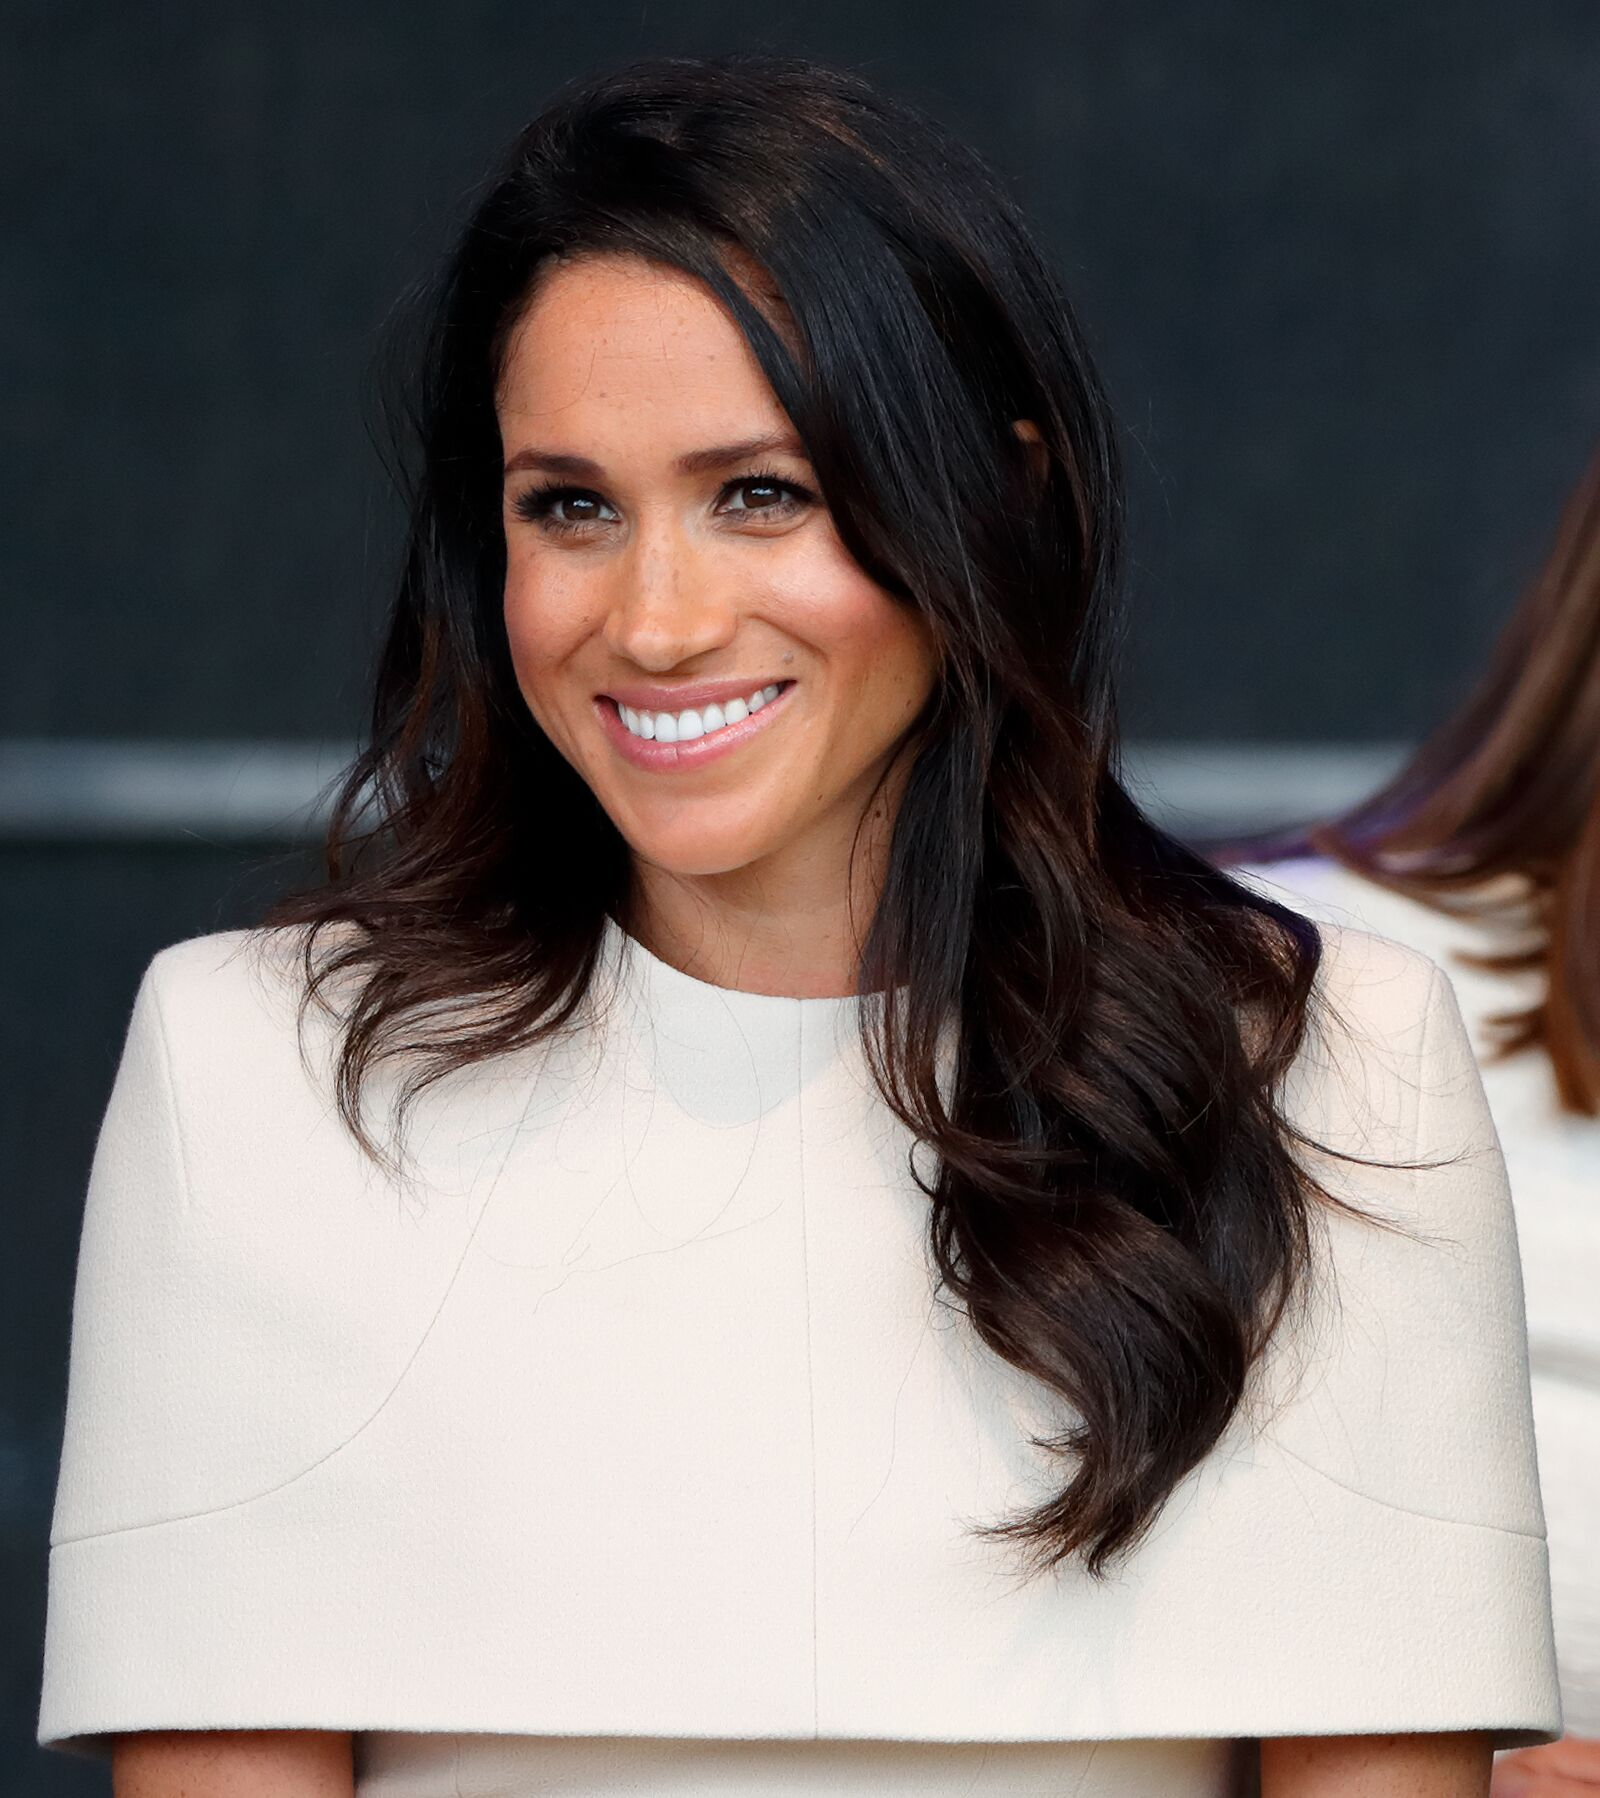 Meghan Markle at a ceremony to open the new Mersey Gateway Bridge on June 14, 2018 in Widnes, England | Photo: Getty Images